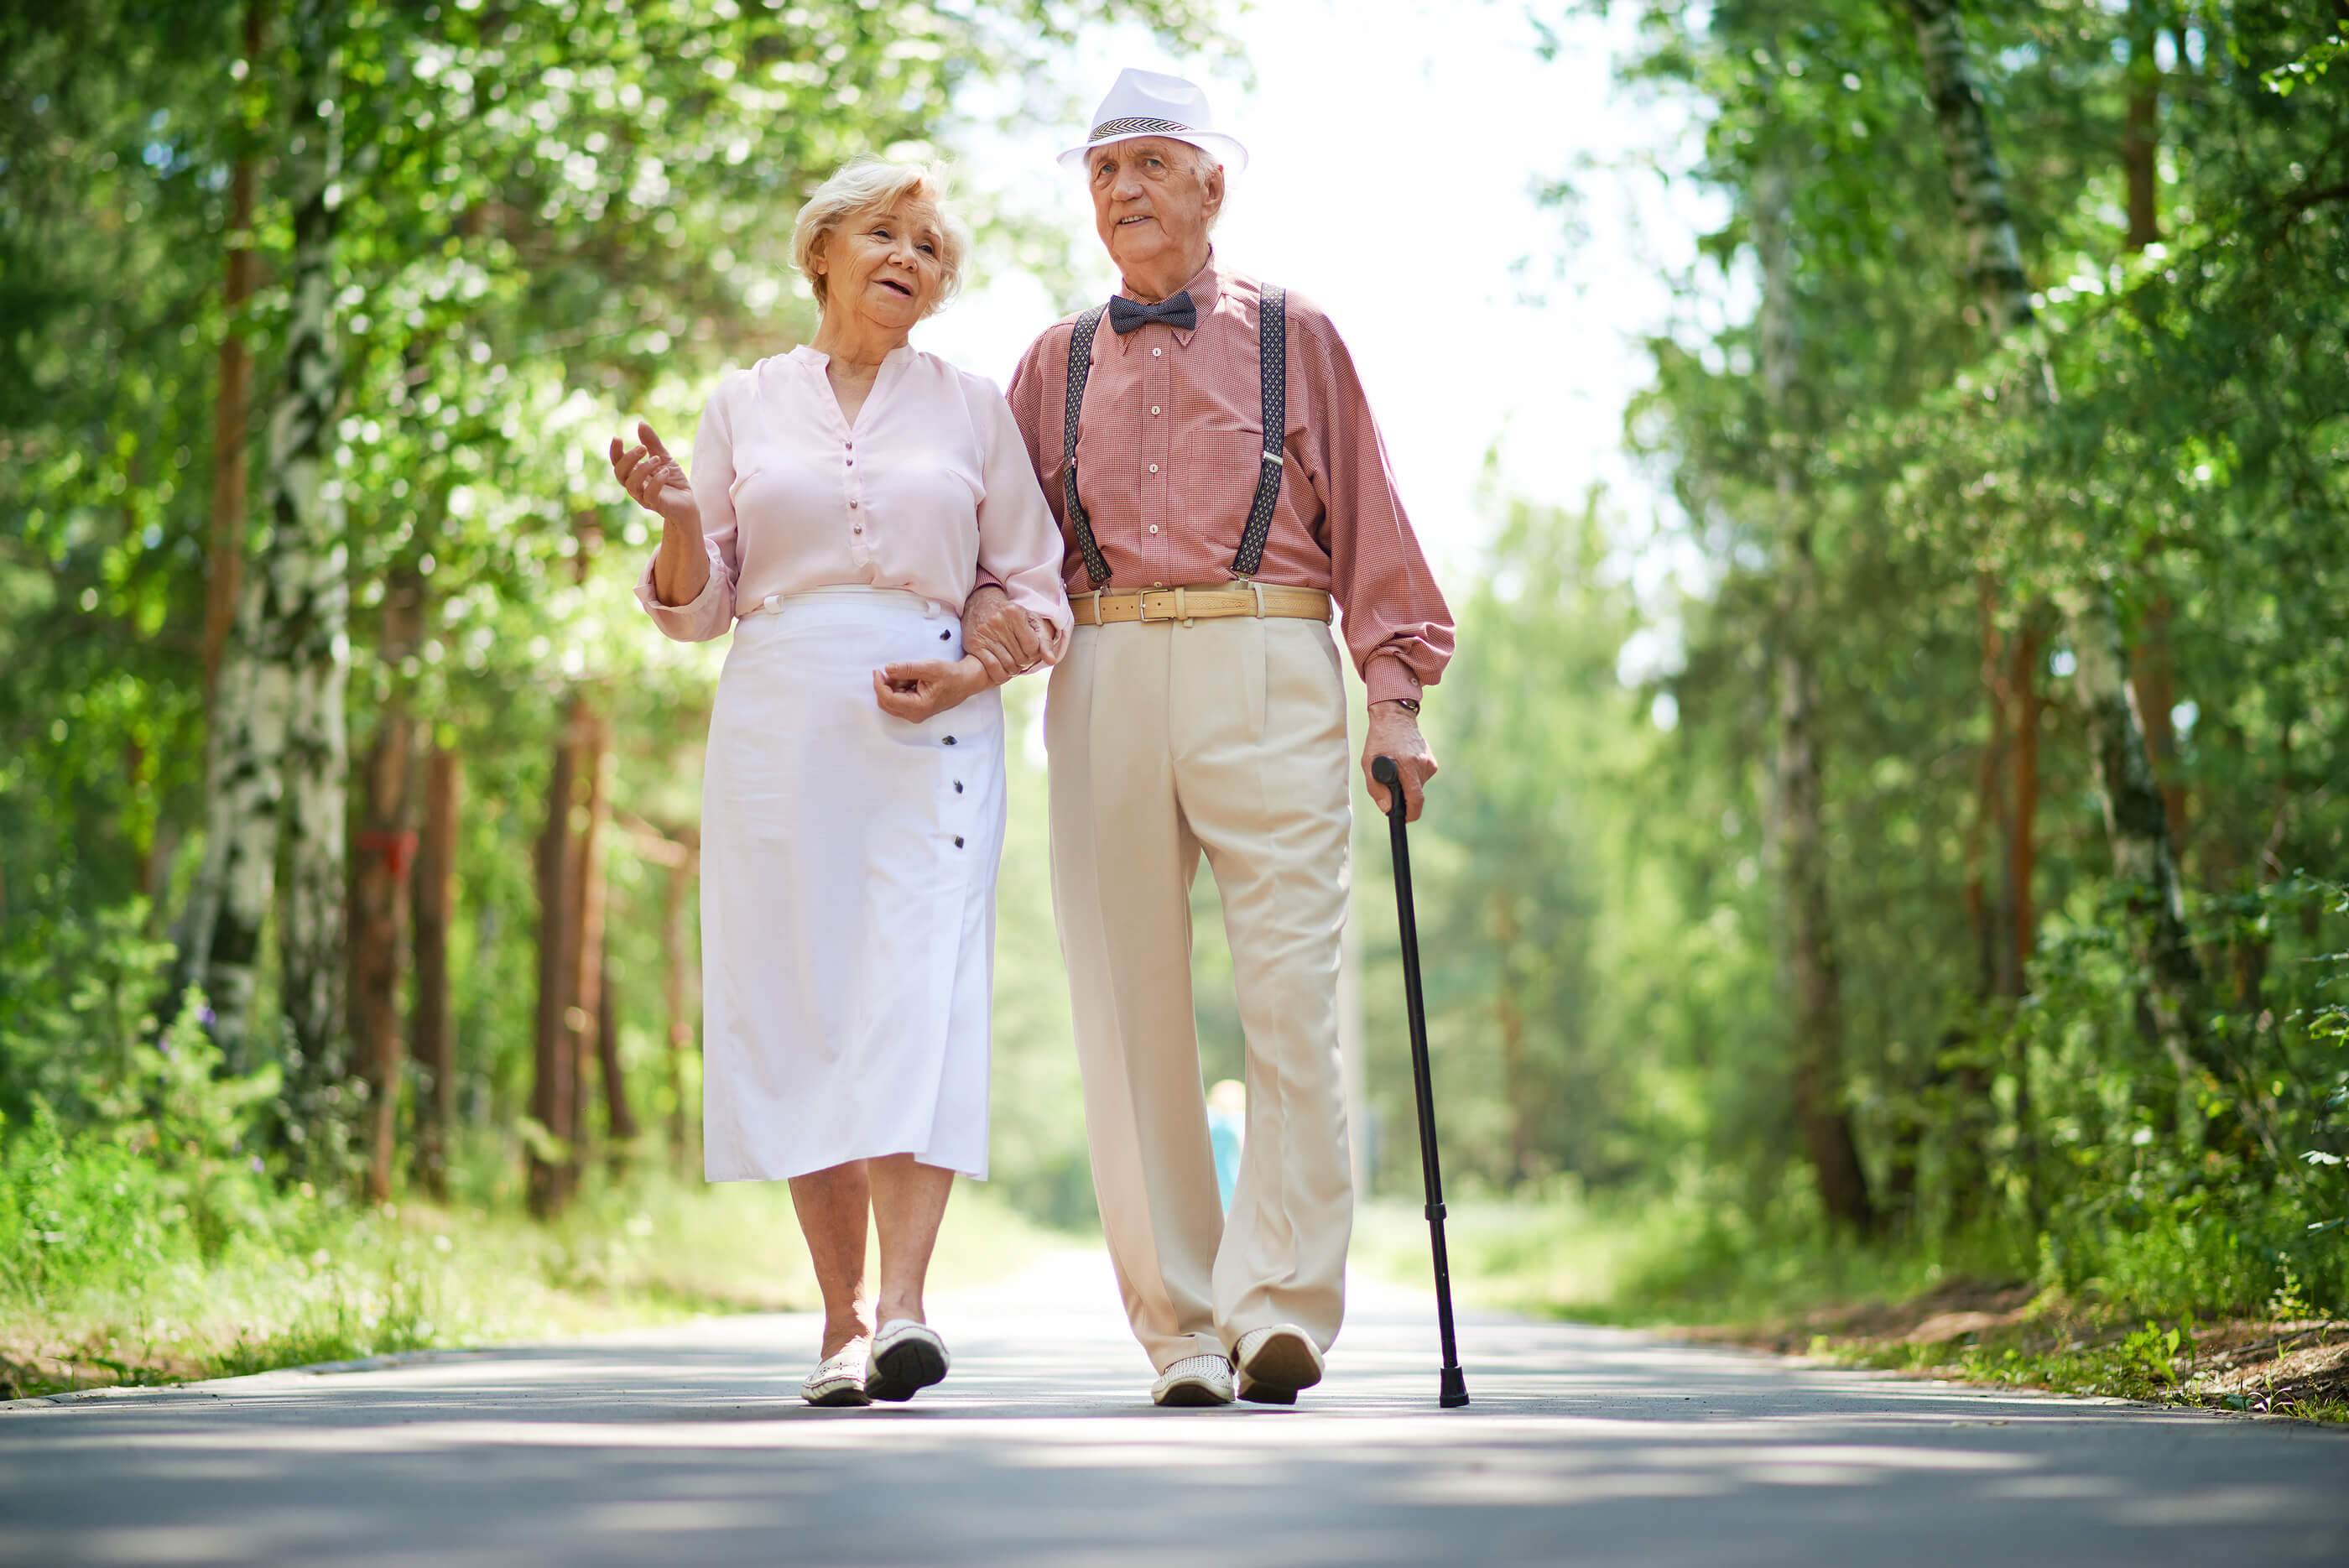 Best Rated Senior Singles Online Dating Services